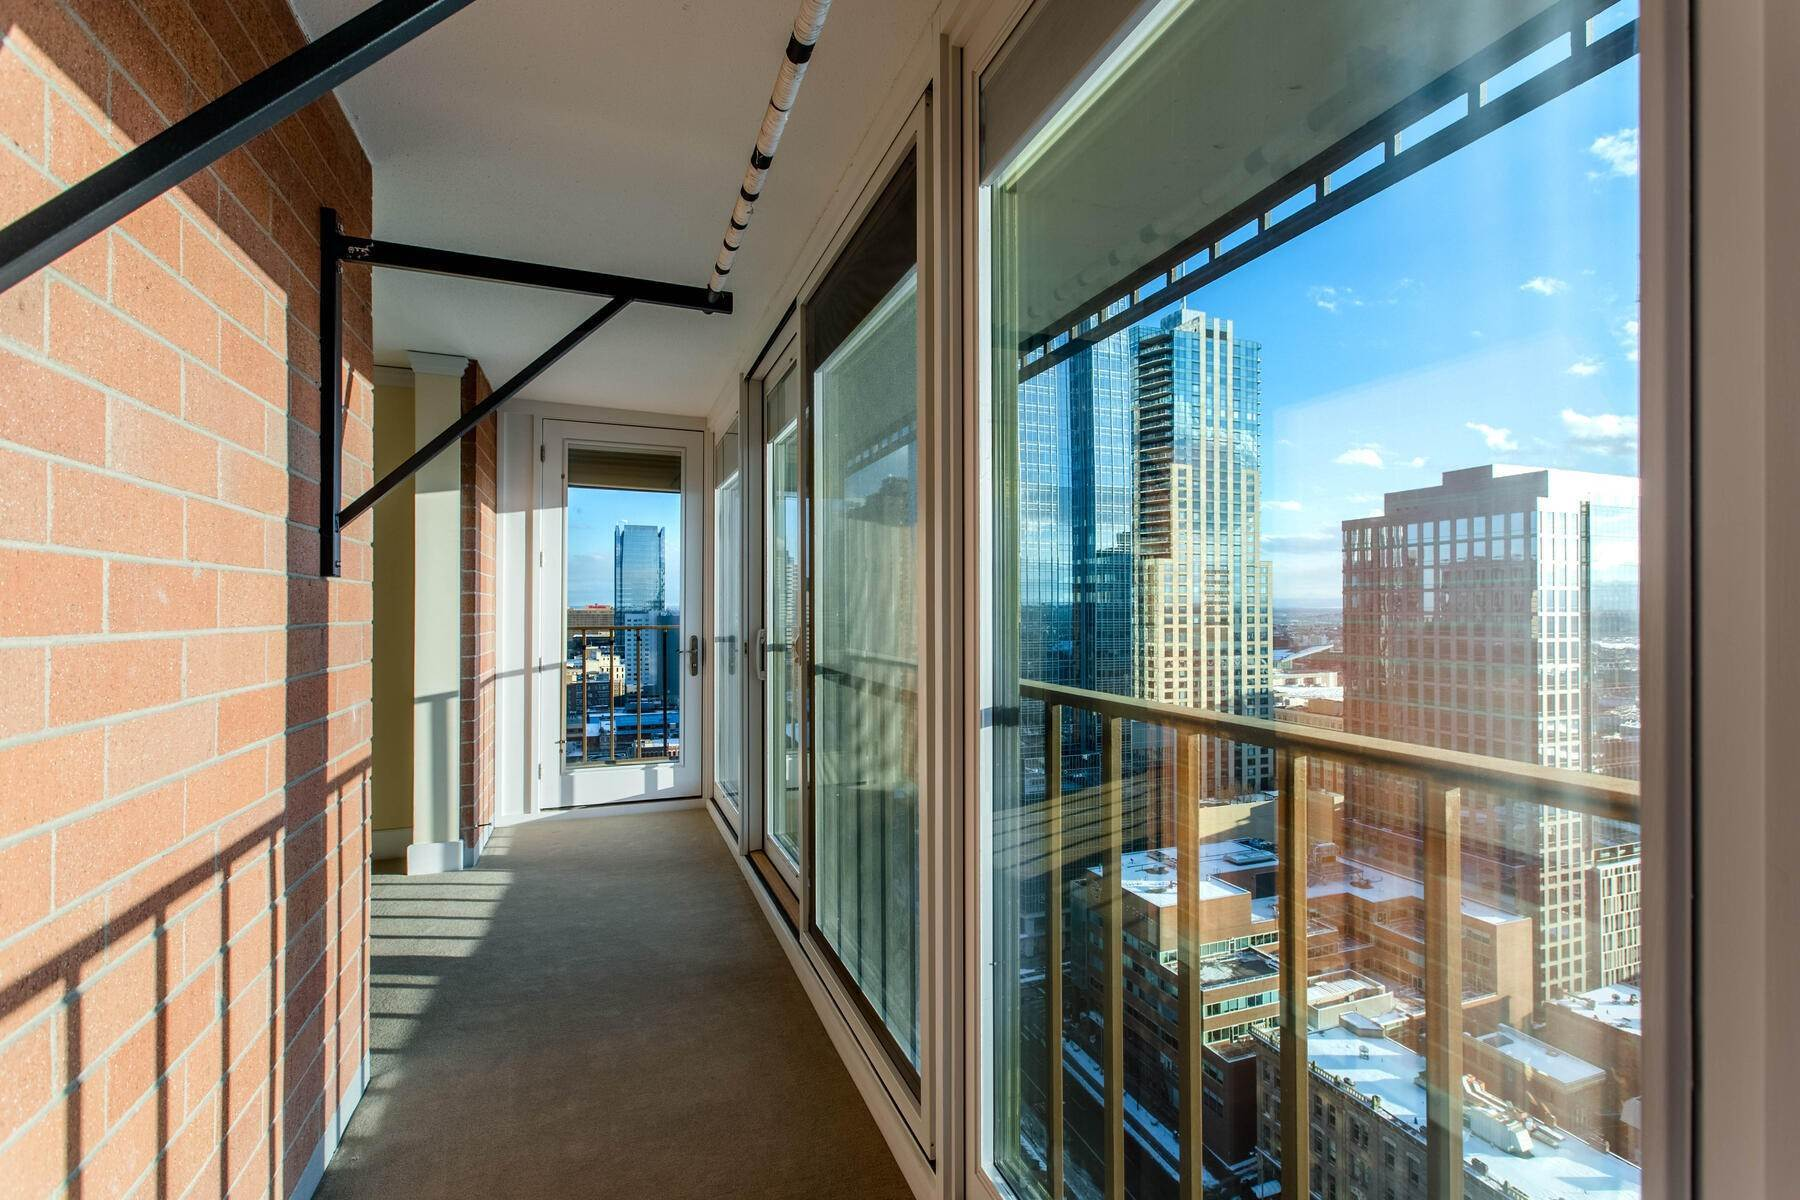 17. Condominiums at IMPRESSIVE FOREVER VIEWS HIGH ATOP THE CITY 1551 Larimer Street Unit #2701C Denver, Colorado 80202 United States